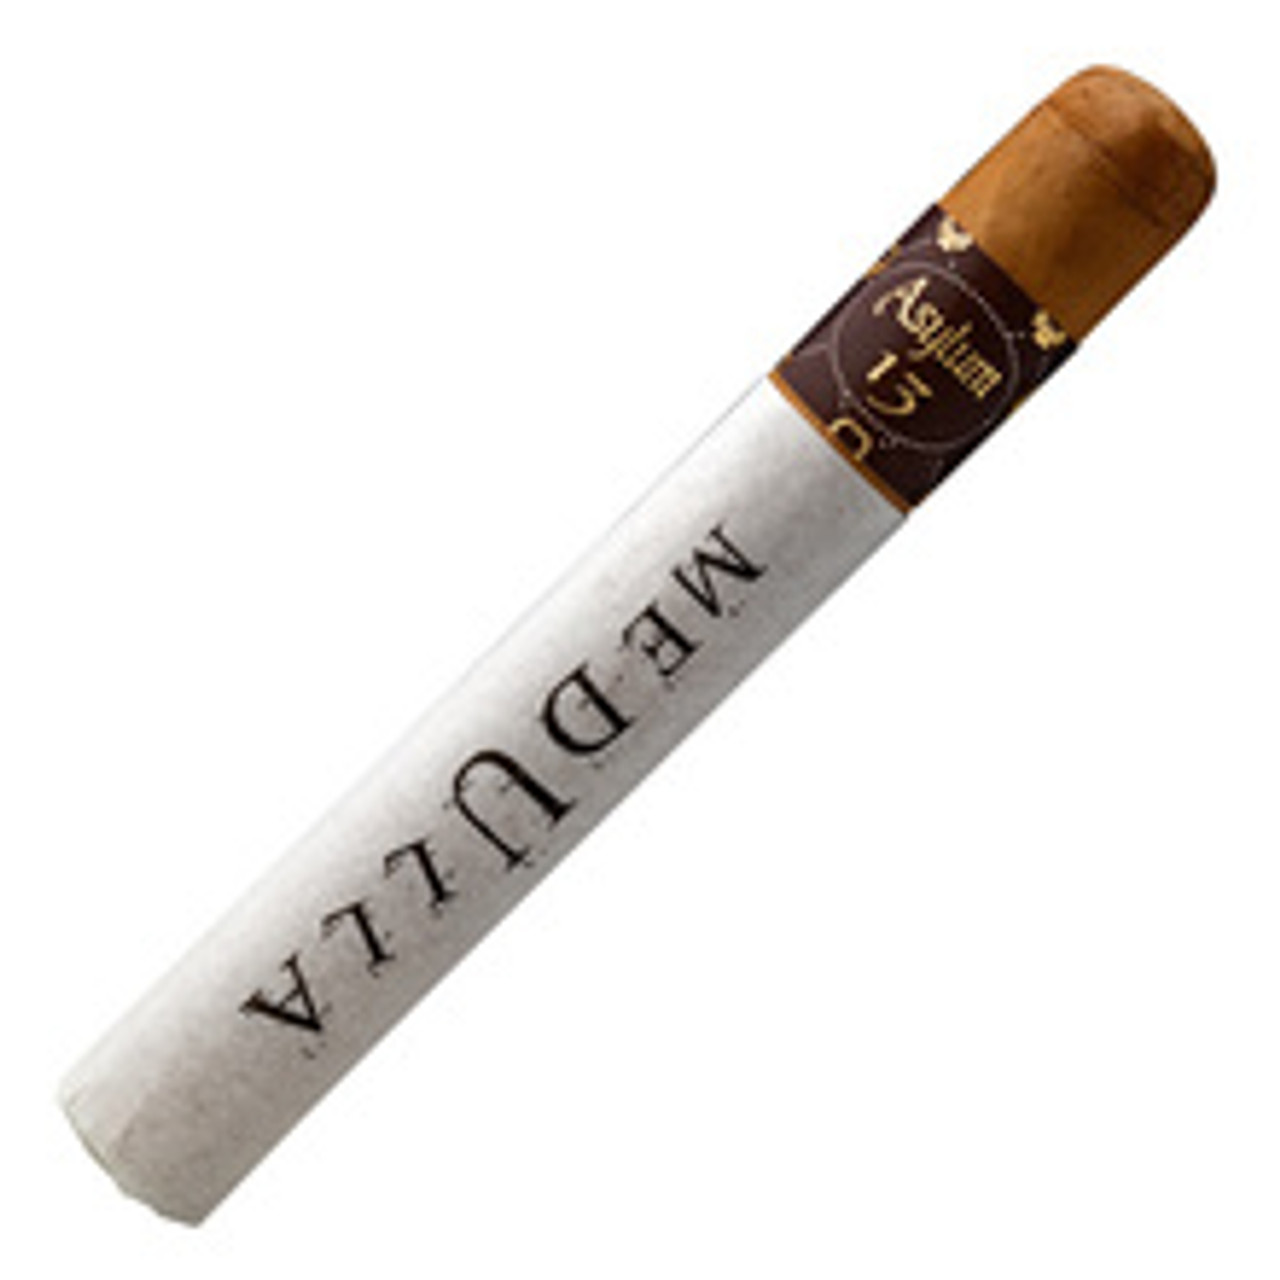 Asylum 13 Medulla Oblongata Cigars - 6 x 60 (Pack of 5)